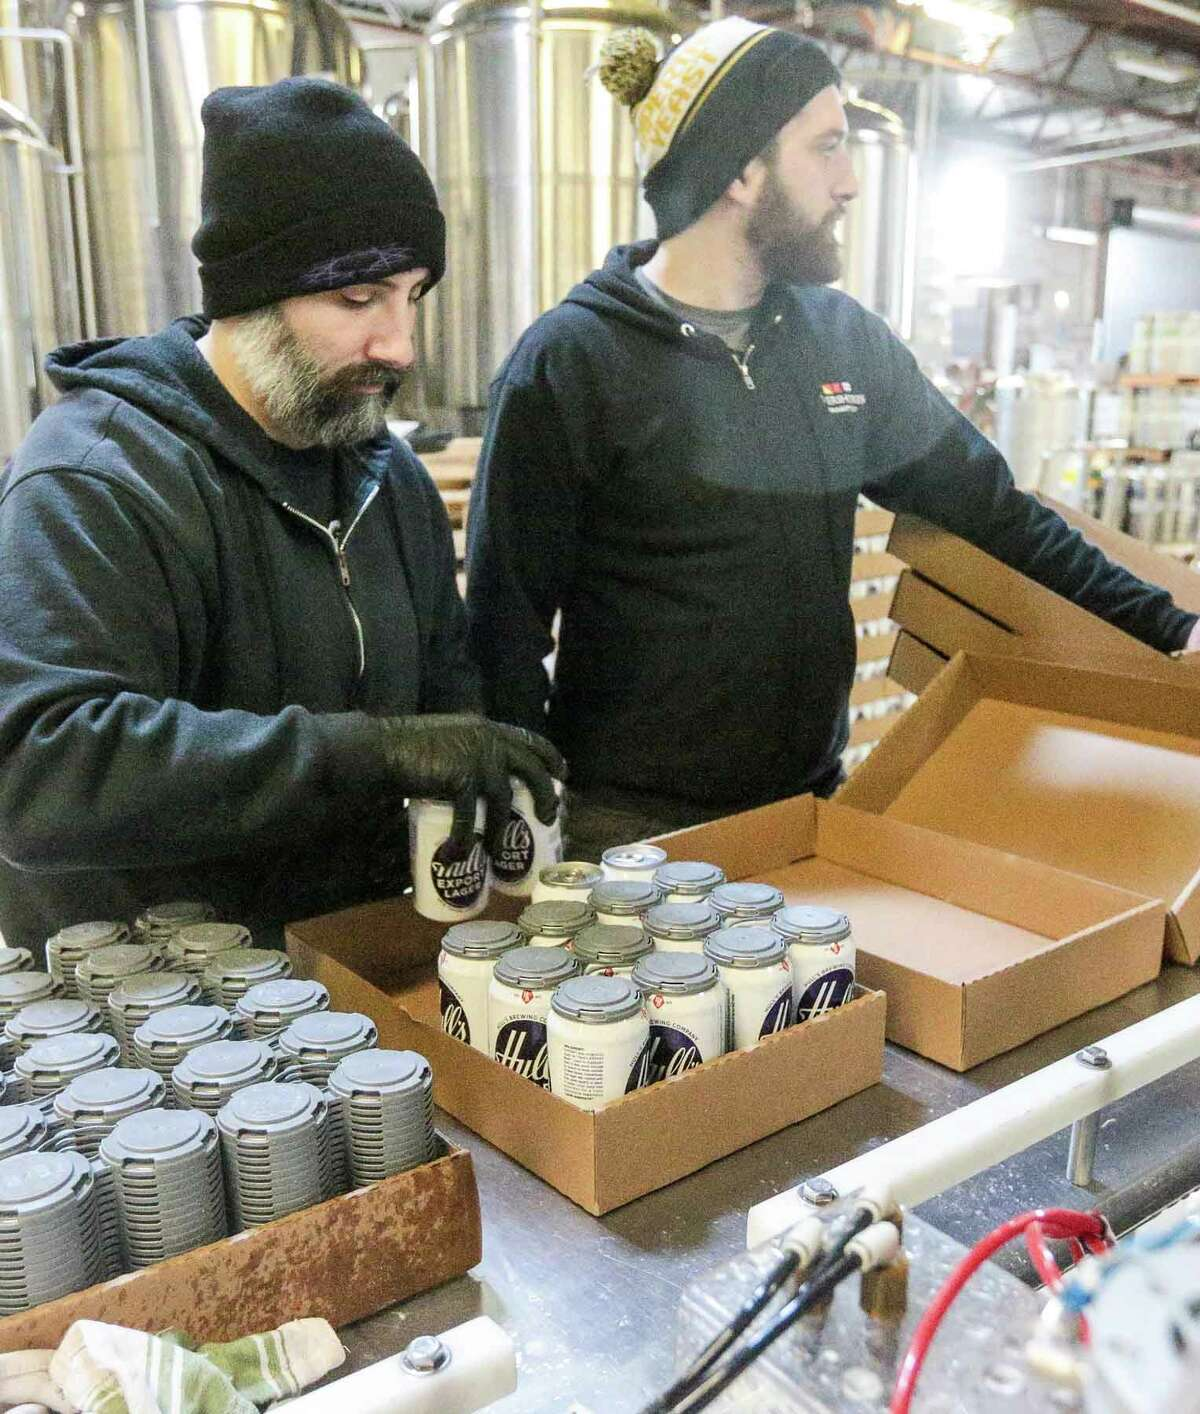 Old time favorite Hull's Export Lager Beer is once again being brewed locally after businessman Chuck DelVecchio bought the recipe. It is being distributed starting this week. He has a contract with Overshores Brewery to produce it.